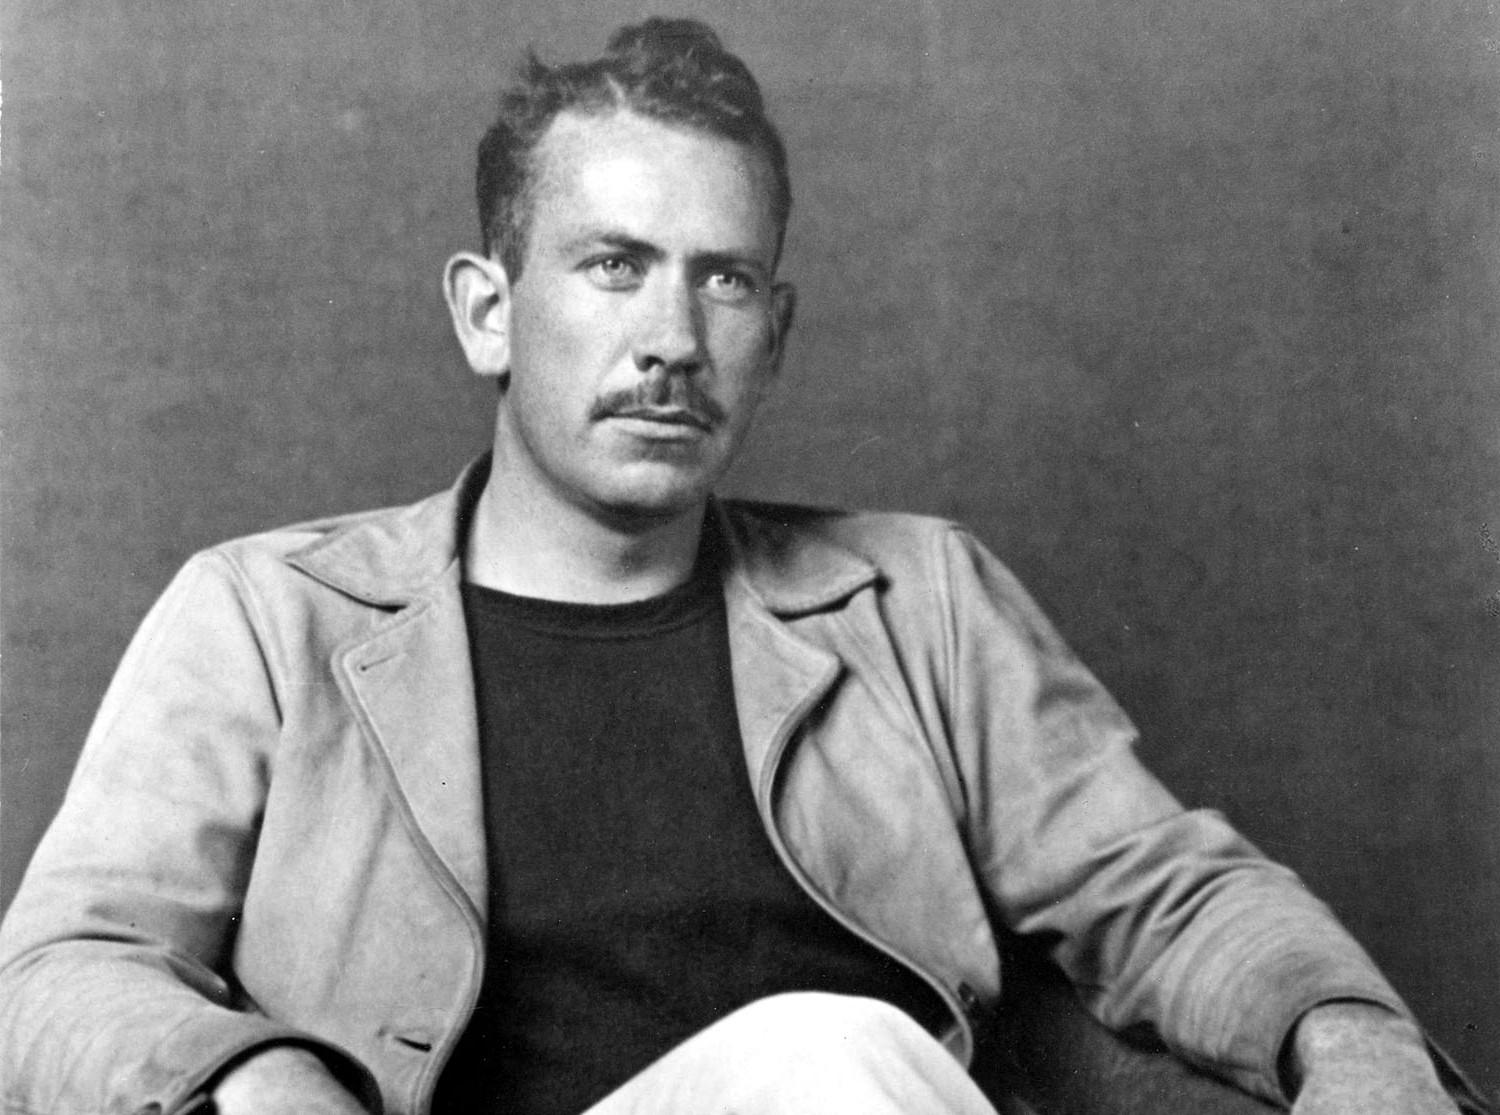 the life and early works of john steinbeck John steinbeck biography john steinbeck (1902 – 1968) was an american writer best known for his novels about the social consequences of the great depression in america his most famous works include of mice and men (1937), the grapes of wrath (1939) and east of eden (1952) he was awarded the nobel prize for literature in 1962.